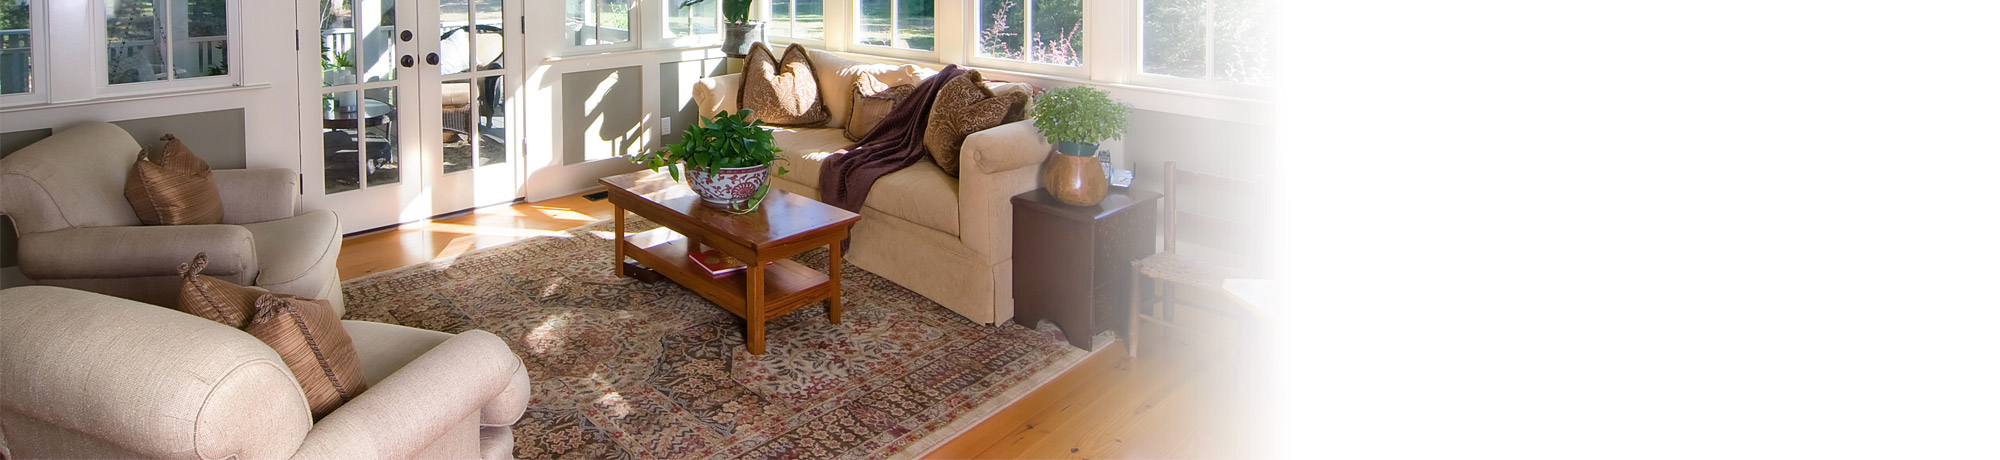 Sunroom Furniture Grouping